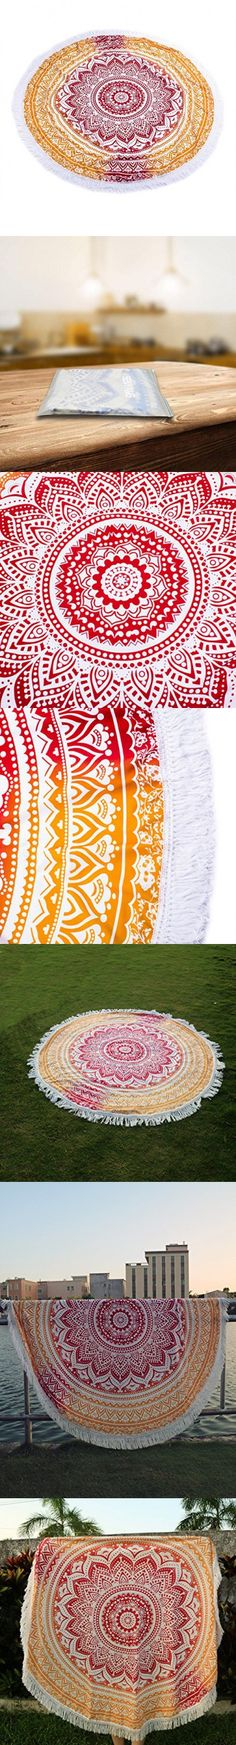 Popular Handicrafts Round Beach Throw - SENYANG Mandala Tassel Fringe Tapestry, Yoga Mat, Picnic Mat , Table throw, Table Cloth, Picnic Blanket ShawlBest Choice for Beach Travel and Home Decor